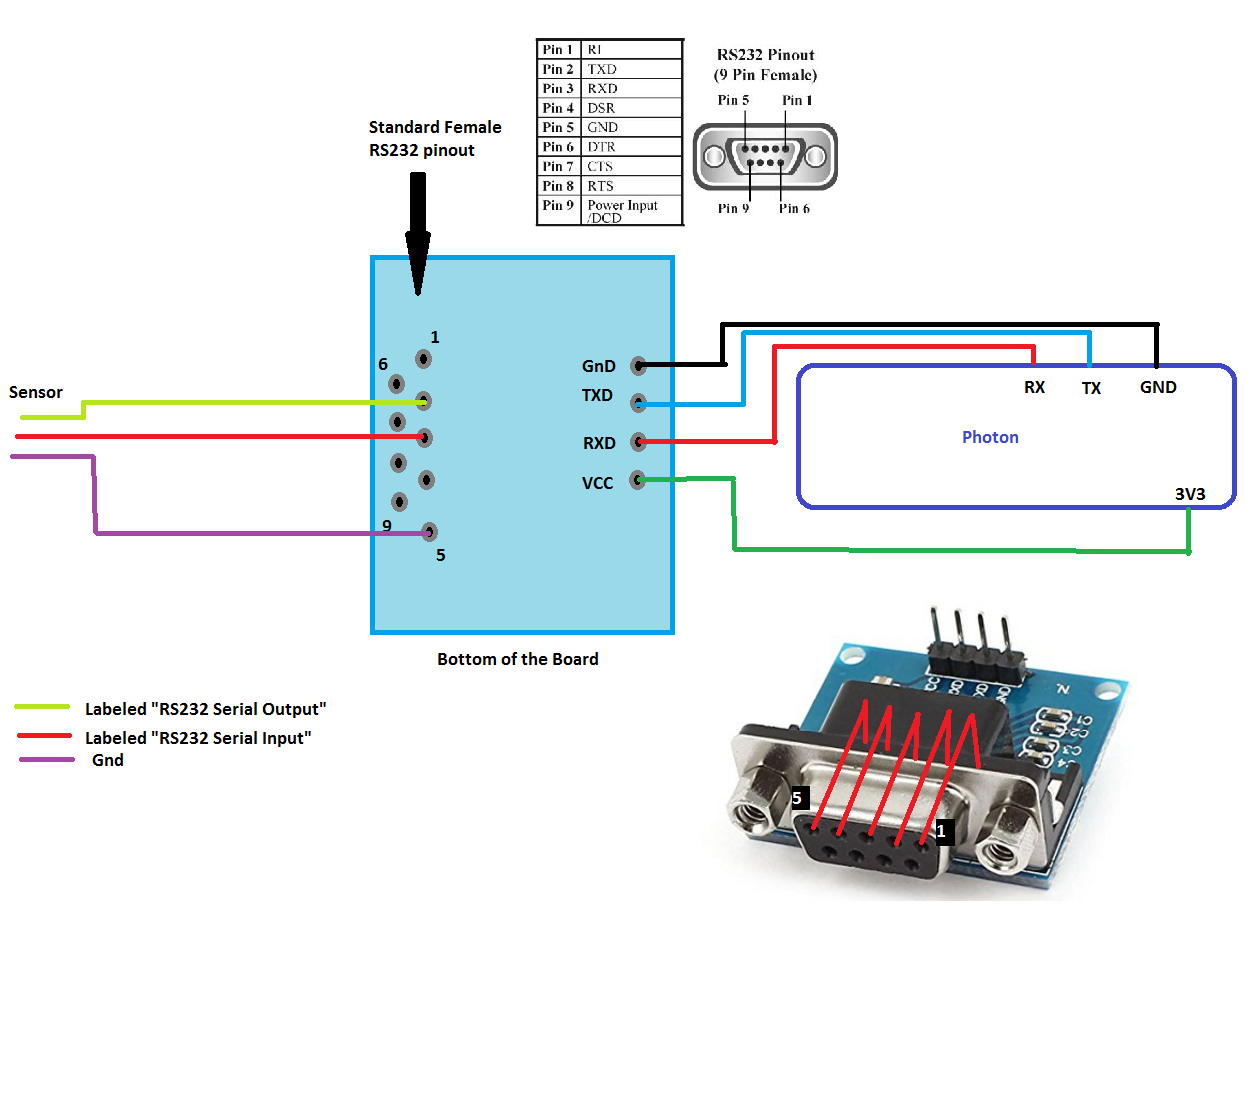 [DIAGRAM_34OR]  RC_8209] Serial Port Pin Diagram Rs232 To Ttl Serial Cable Pinout Diagram  Wiring Diagram | Rs232 To Usb Adapter Wiring Diagram |  | Dogan Bocep Mohammedshrine Librar Wiring 101